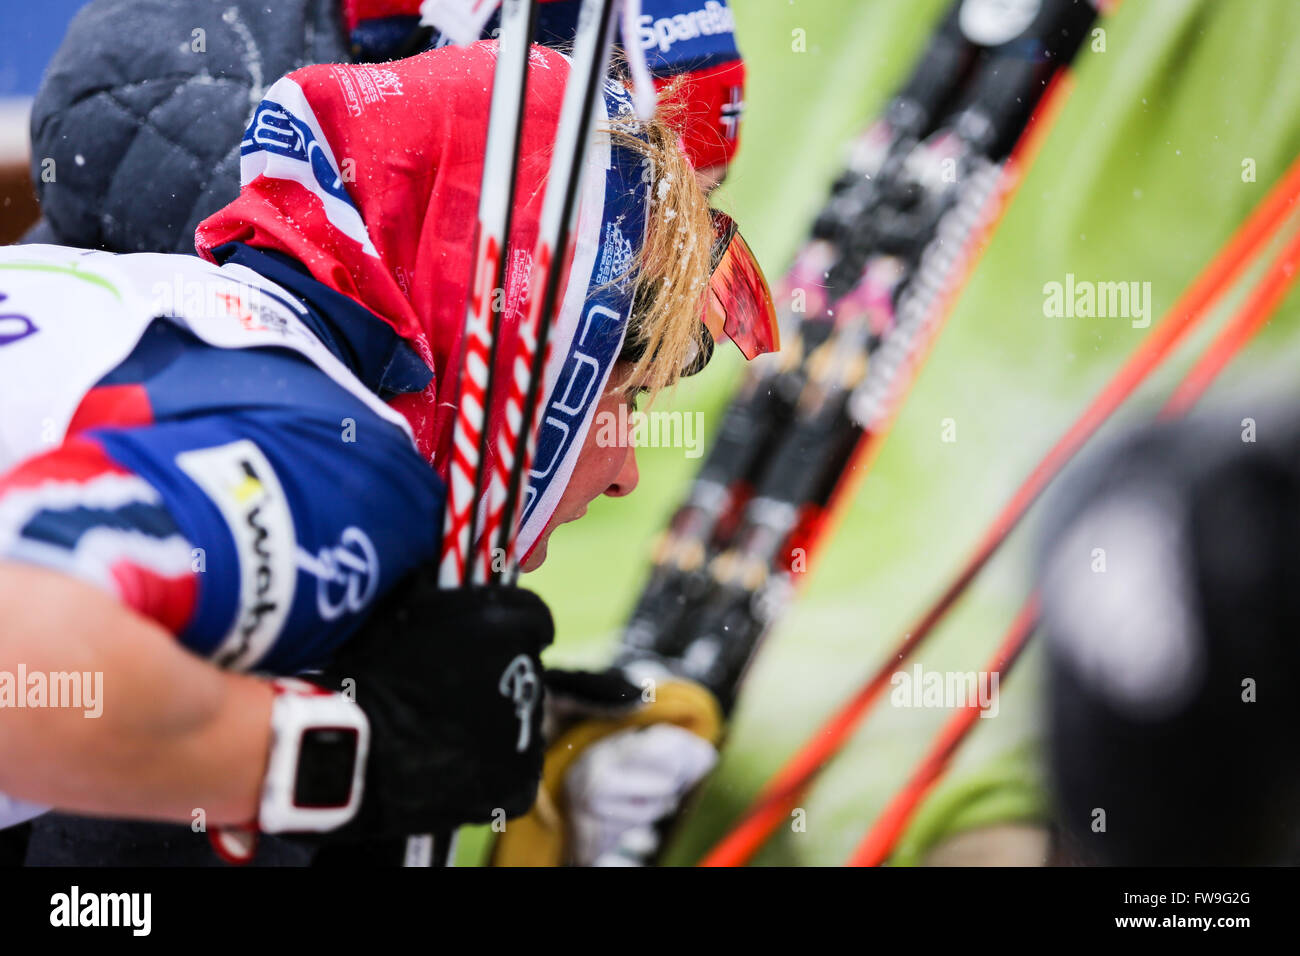 Nove Mesto na Morave, Czech Republic - January 23, 2016: FIS Cross Country World Cup, women 10km. - Stock Image